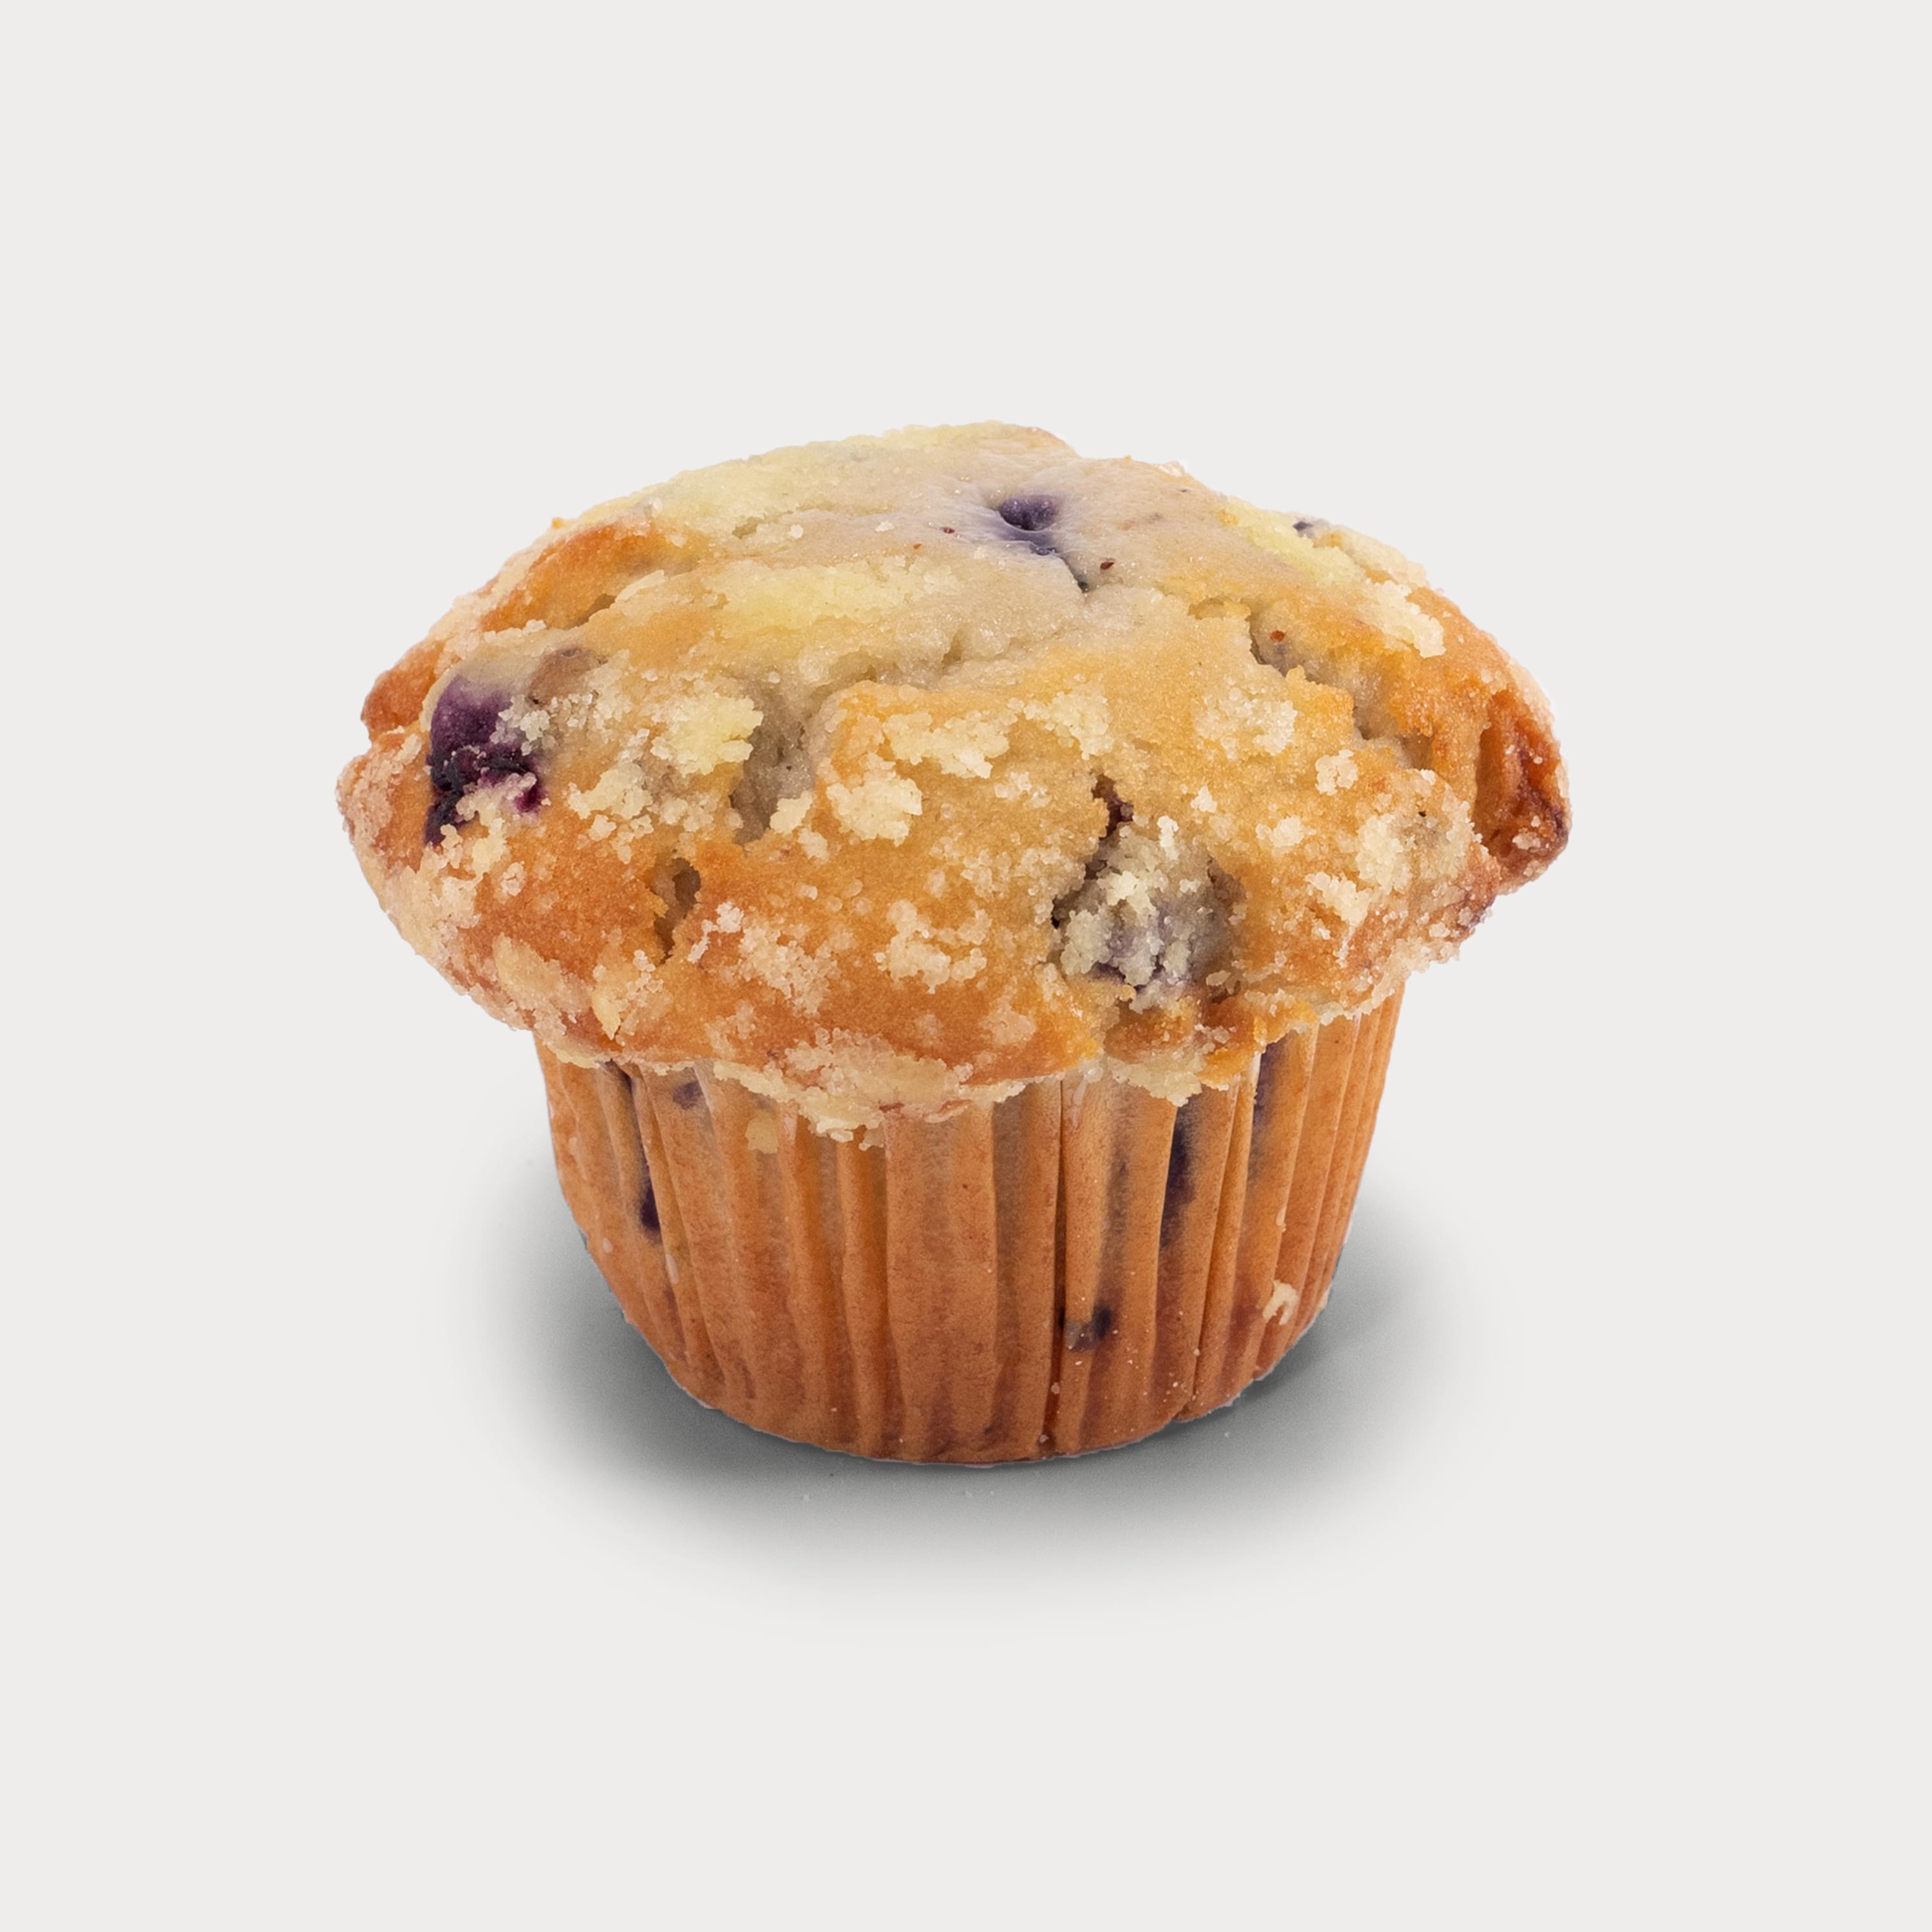 Pastry muffin blueberry thumb